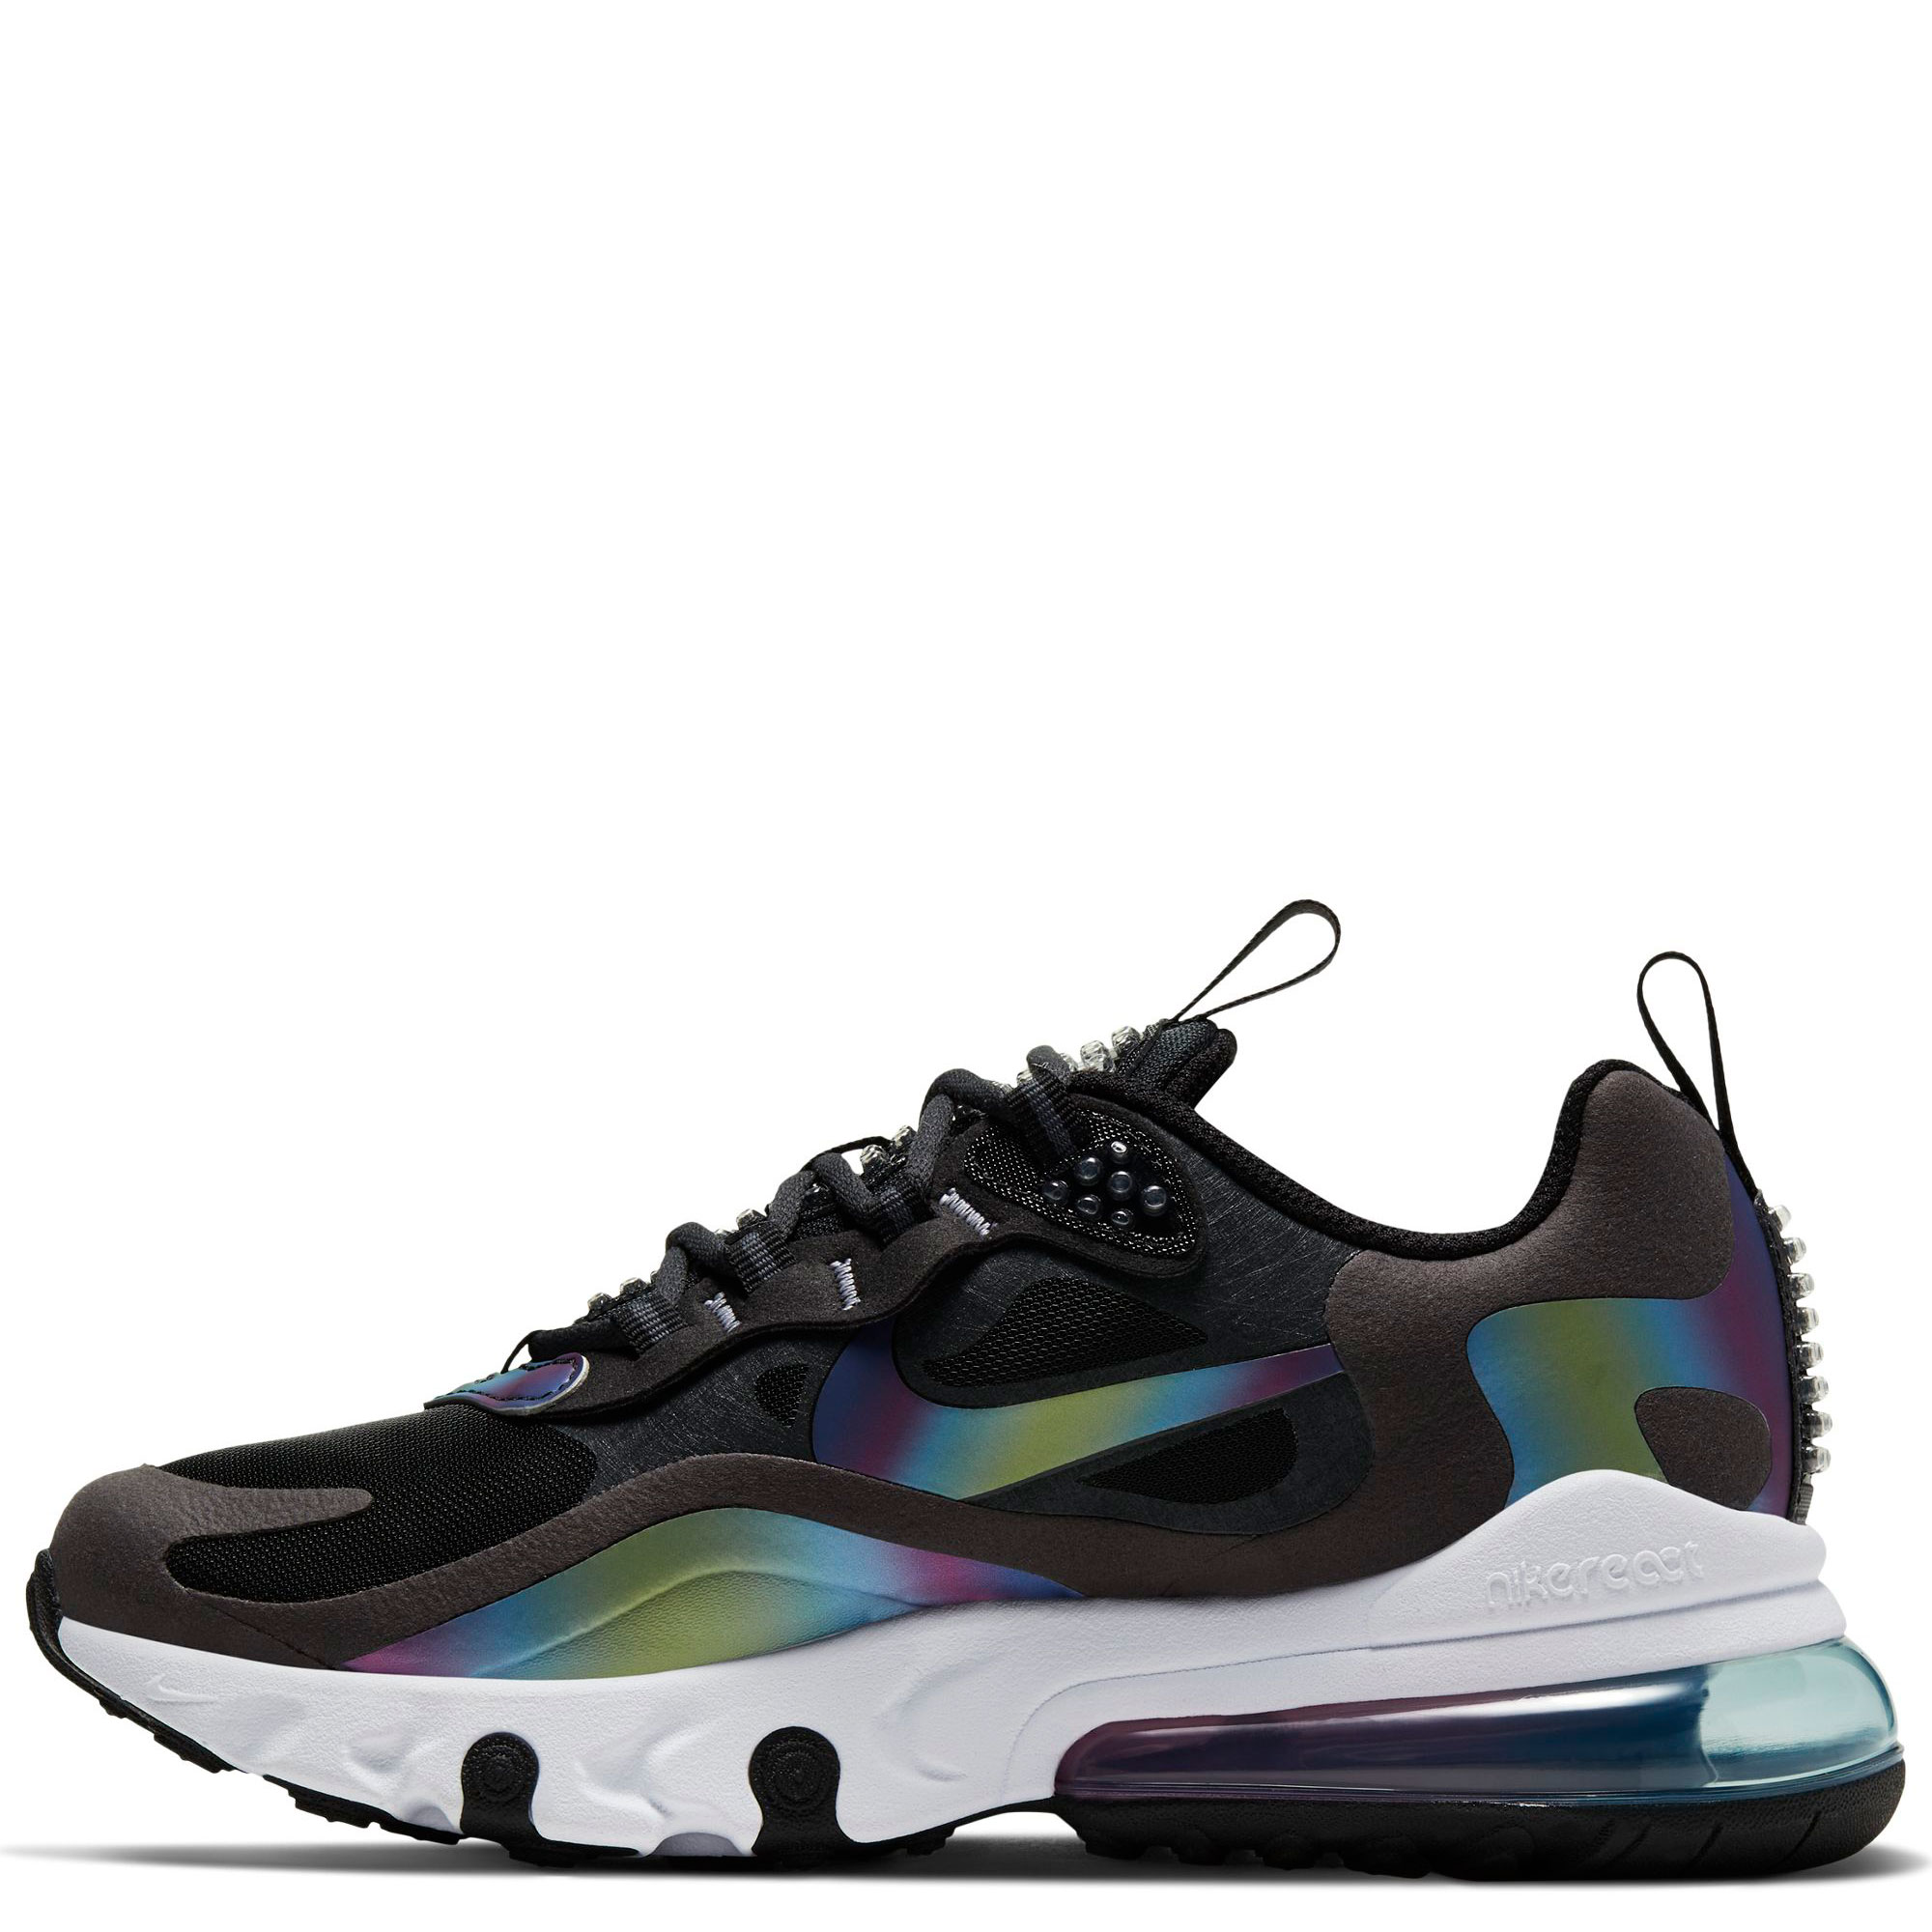 air max 270 react color